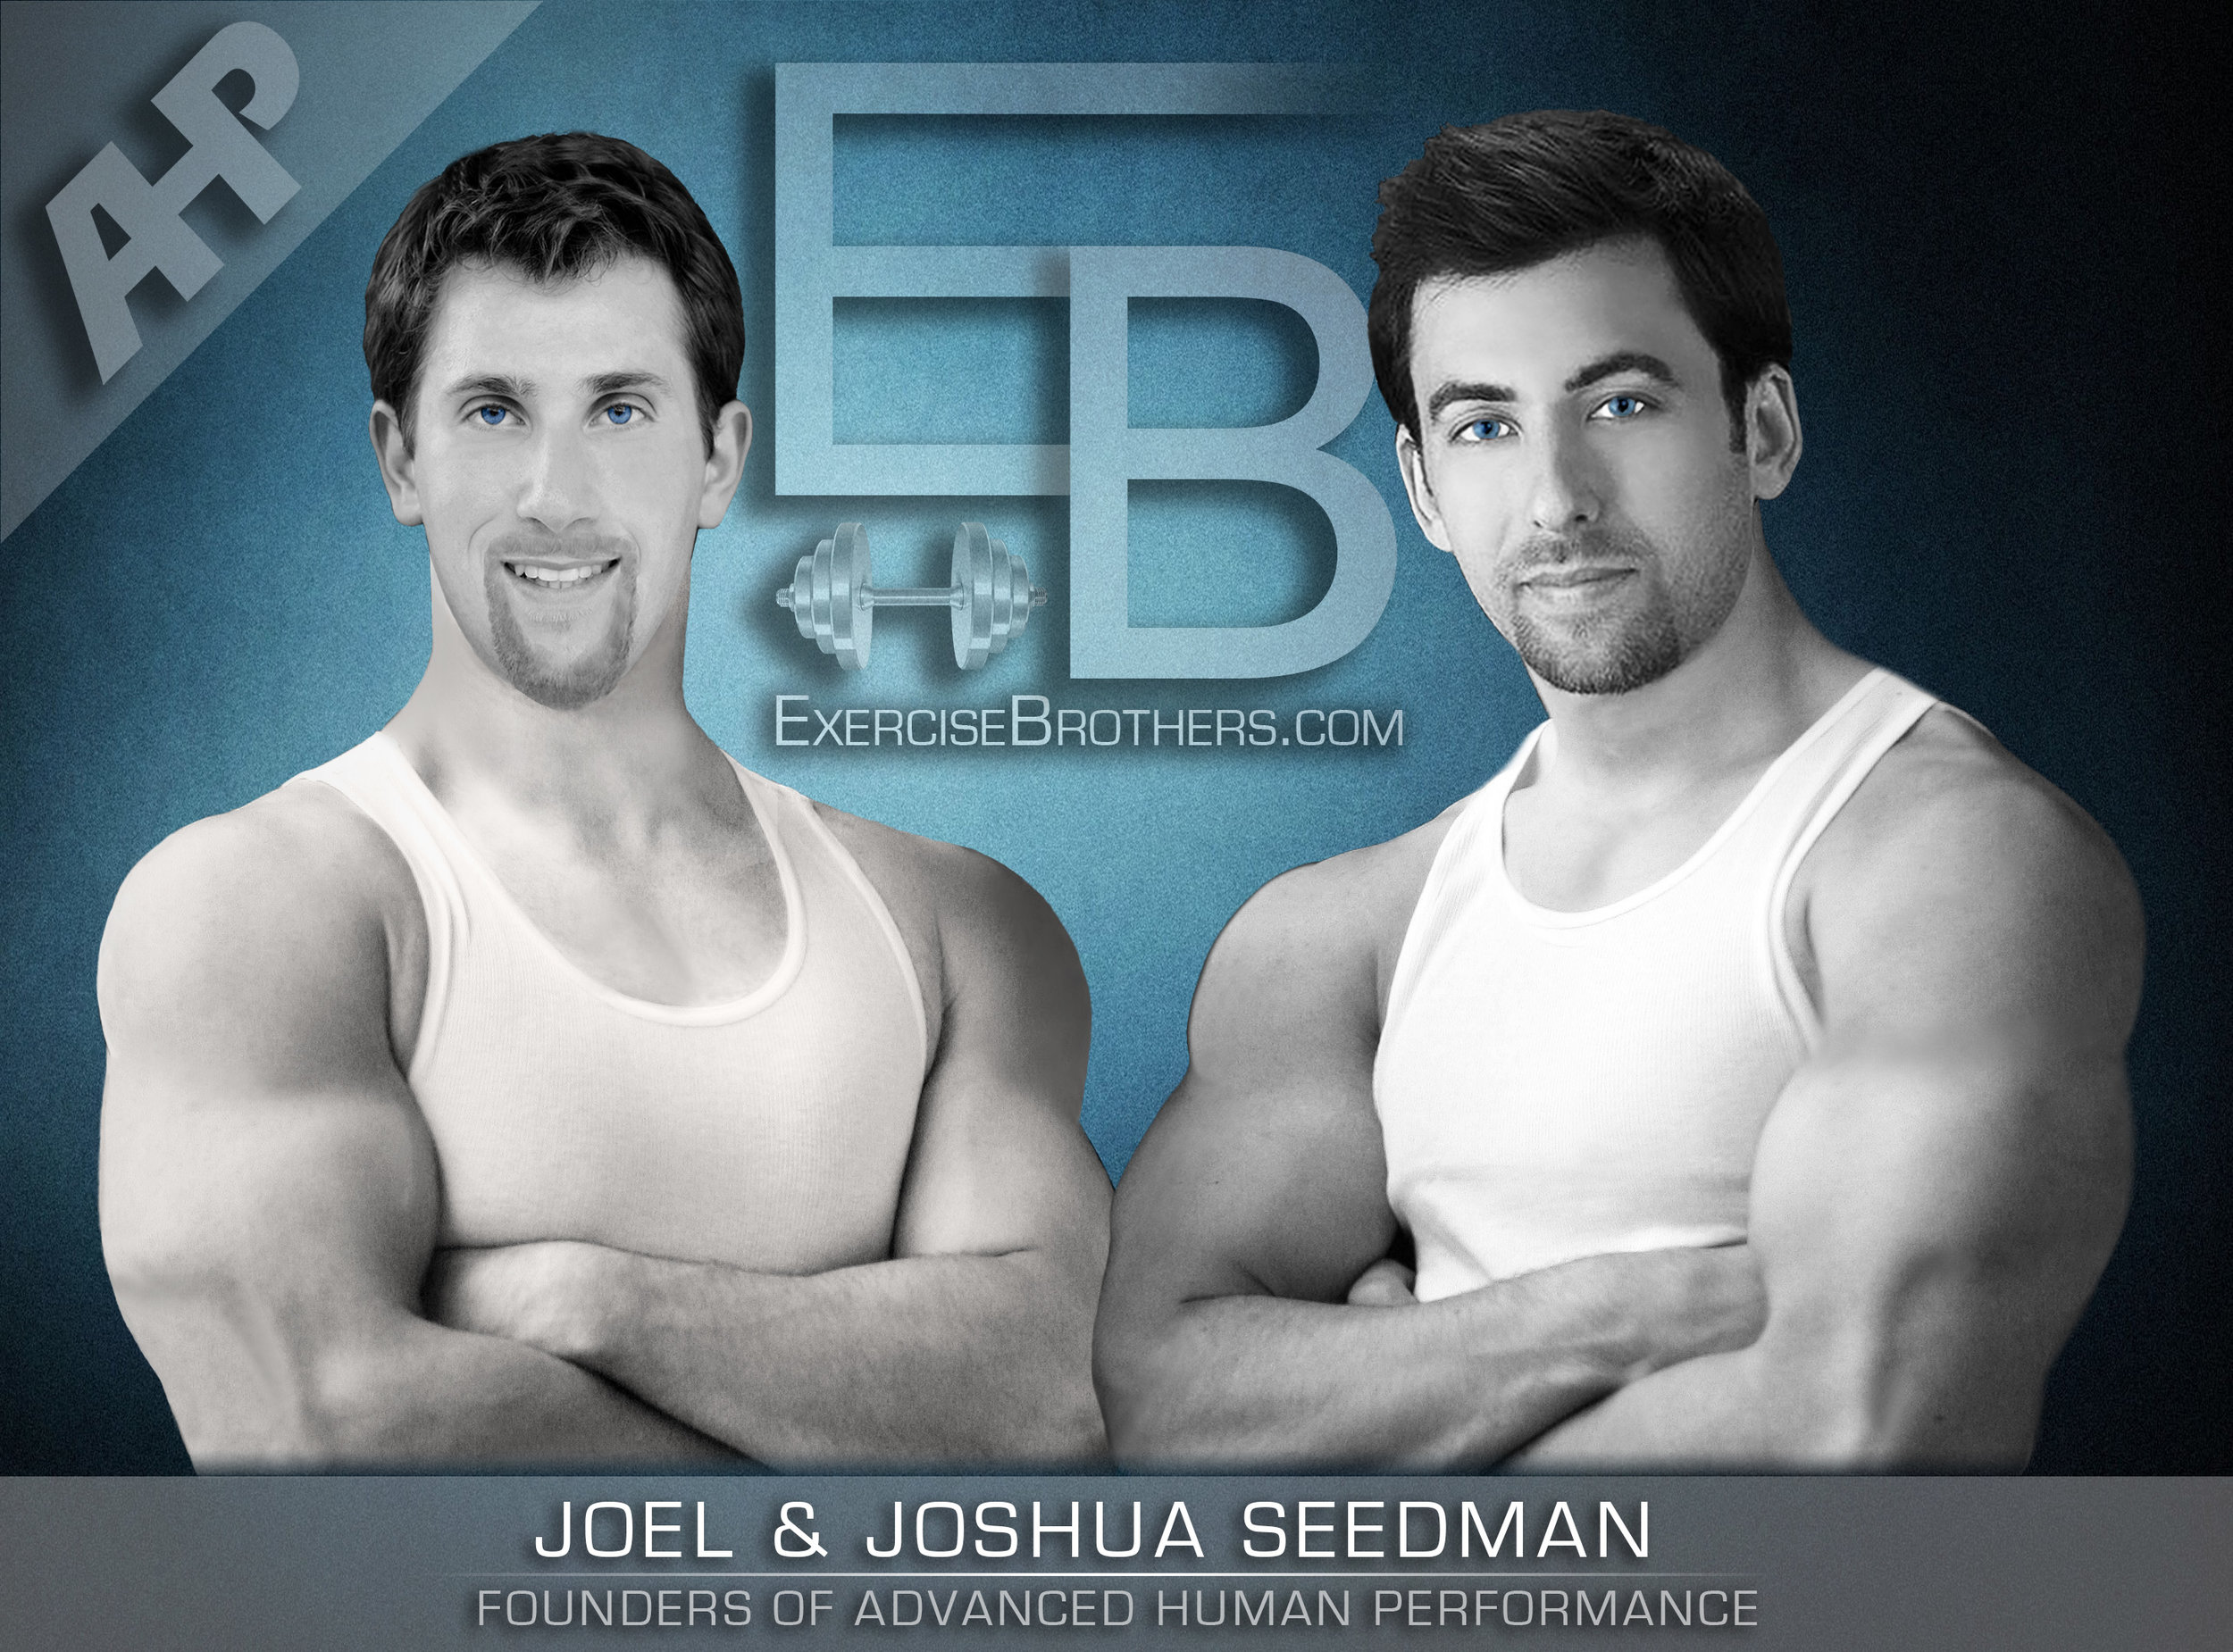 Joel & Joshua Seedman - The Exercise Brothers & Founders of AHP -